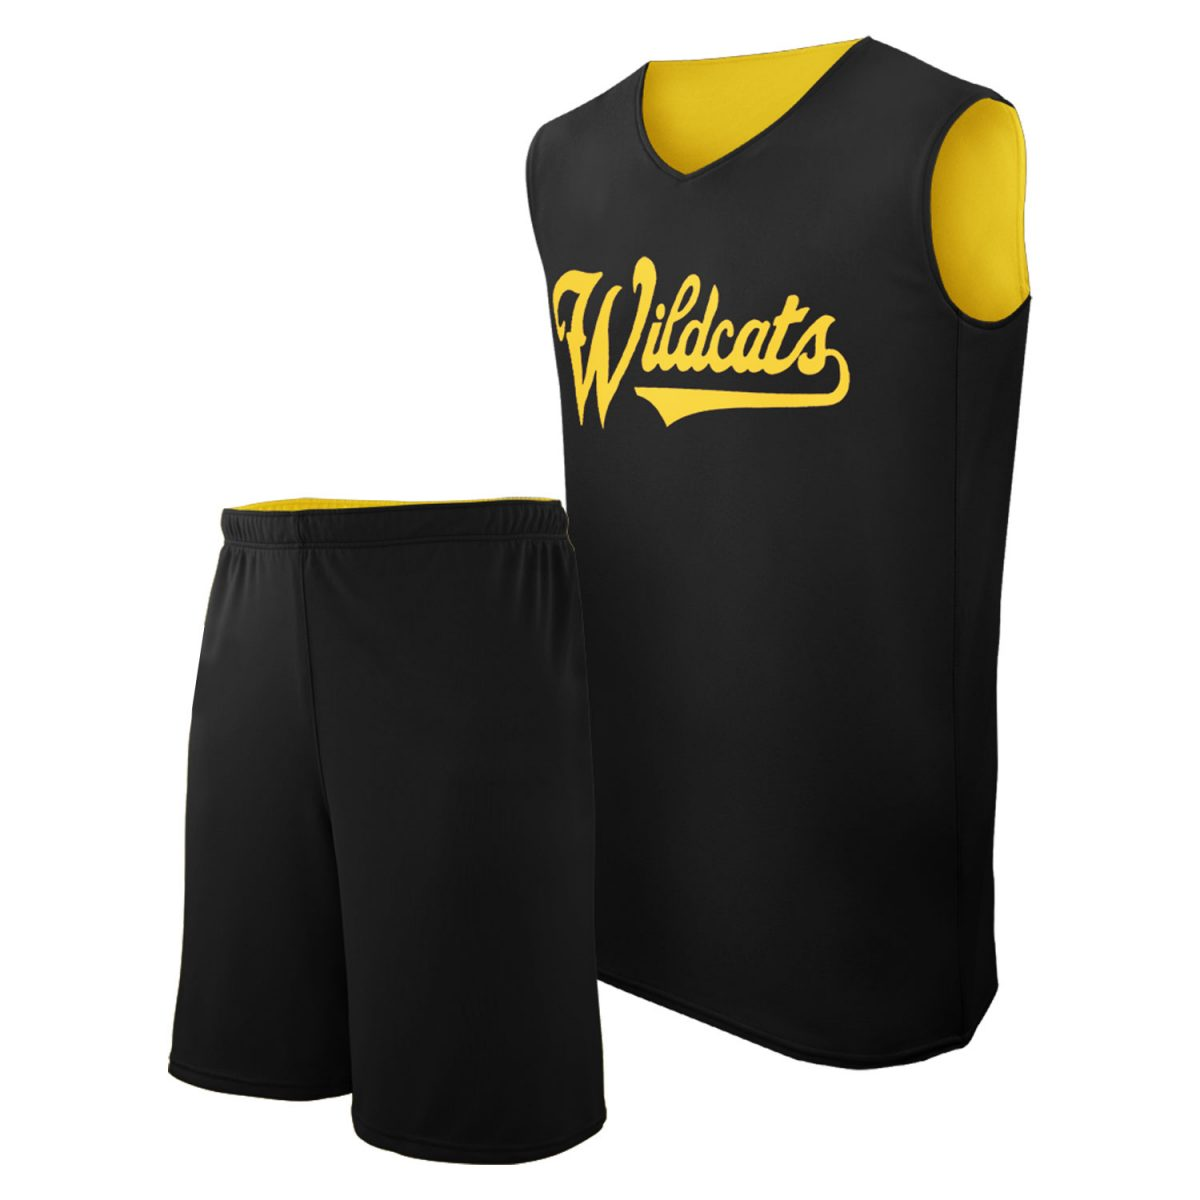 Boys Basketball Uniforms Manufacturers in Jalandhar in South Africa